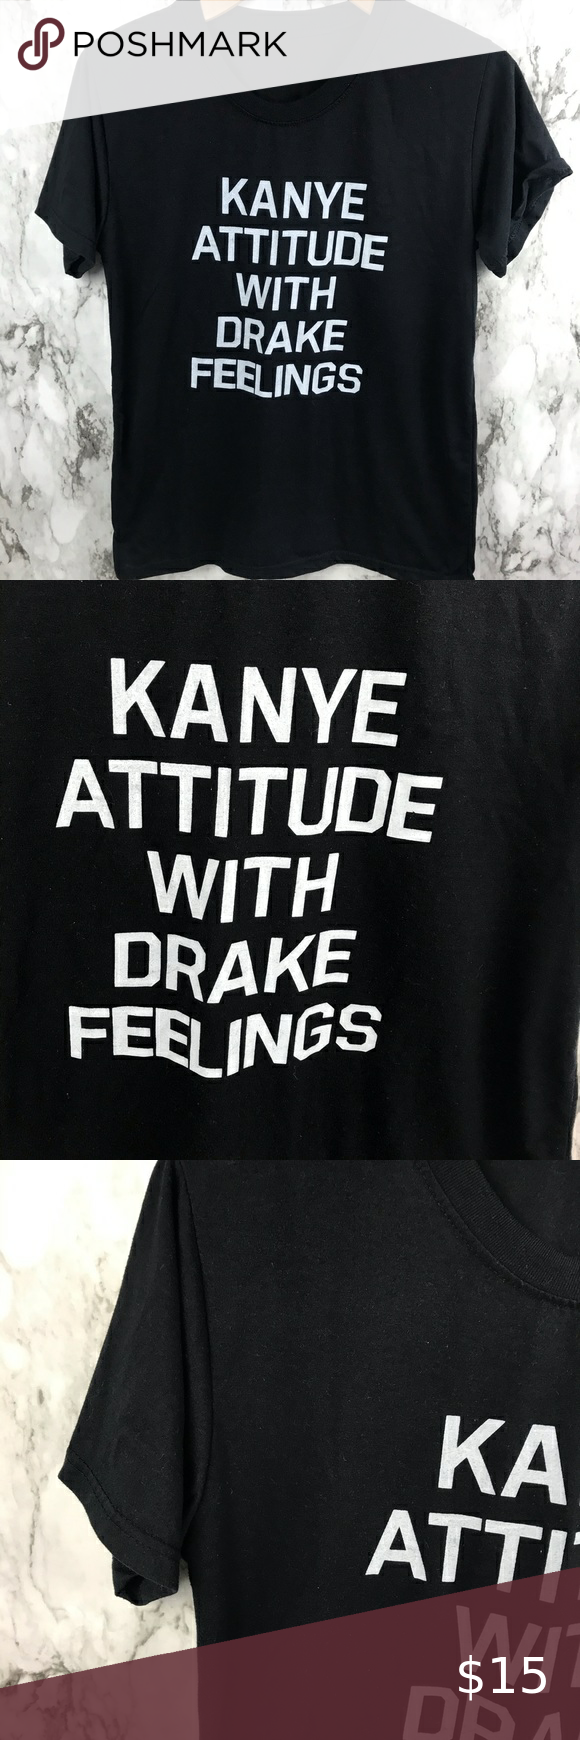 """Kanye Drake Print Shirt Black Size Medium Size tag missing but fits a Medium Pit to pit 19"""" Length is 26"""" #010 Tops Tees - Short Sleeve"""